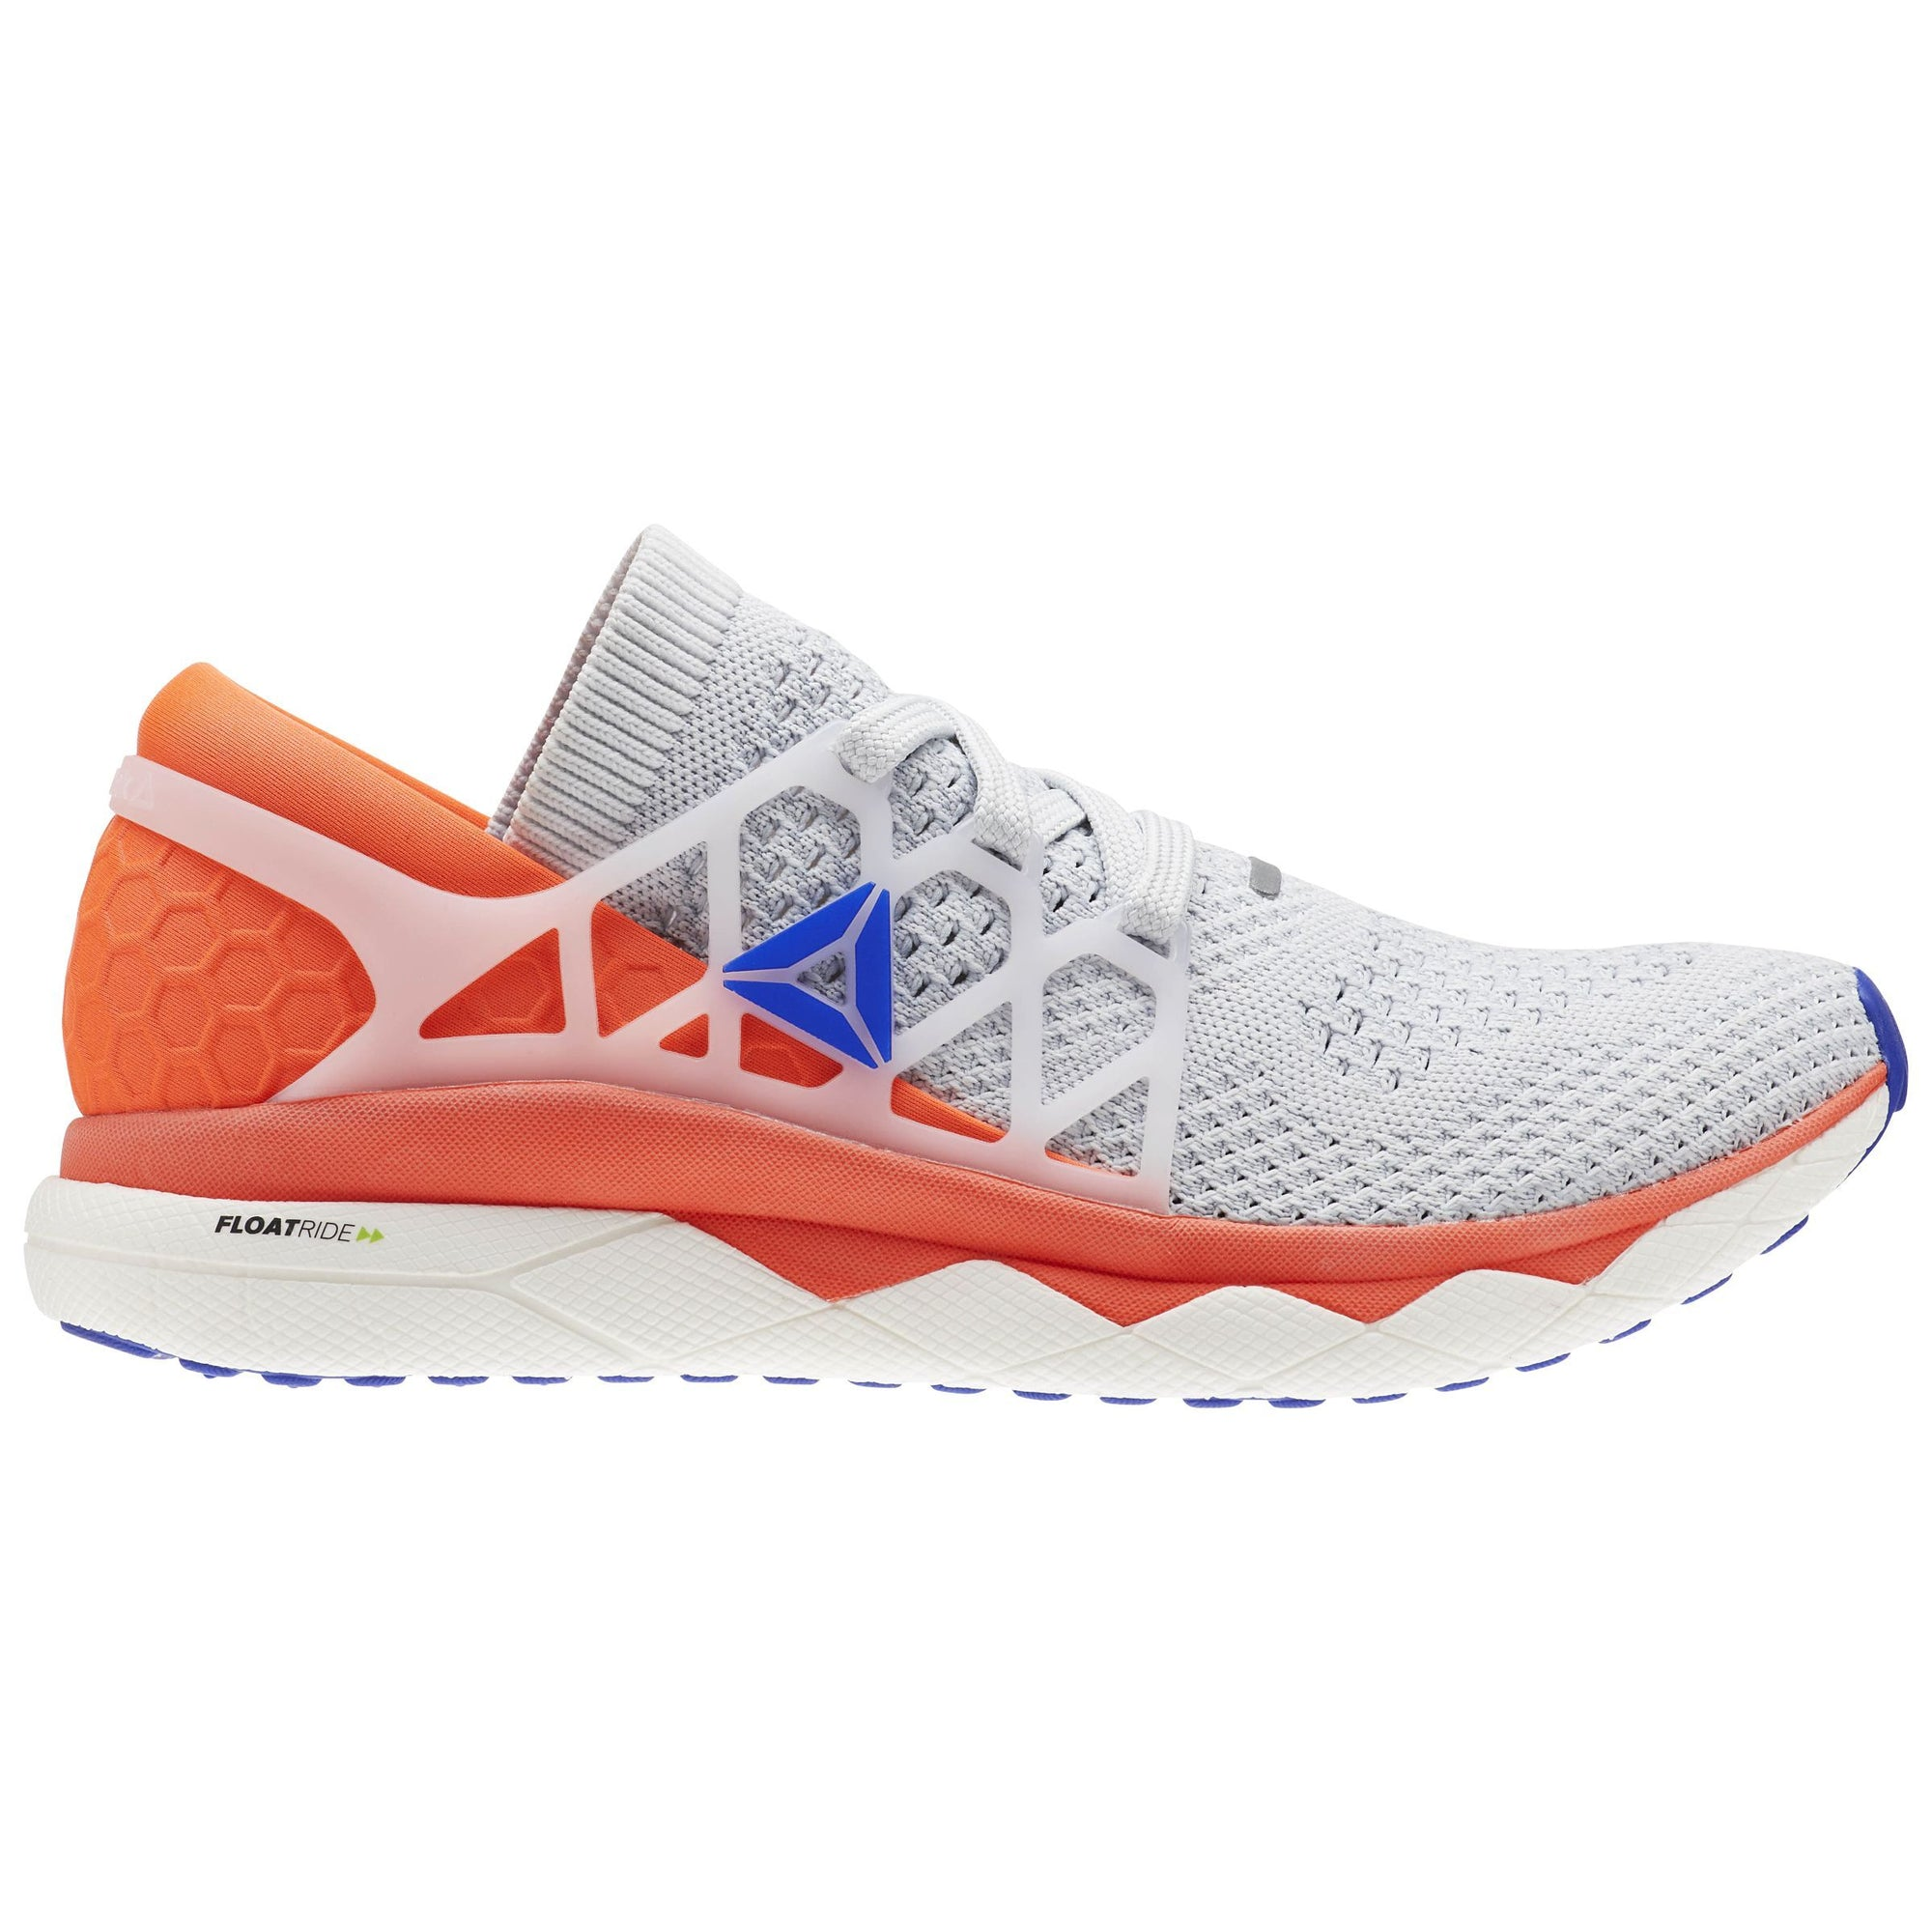 Buy Reebok Men Floatride Run Ultraknit Running Shoe 88a41abf7